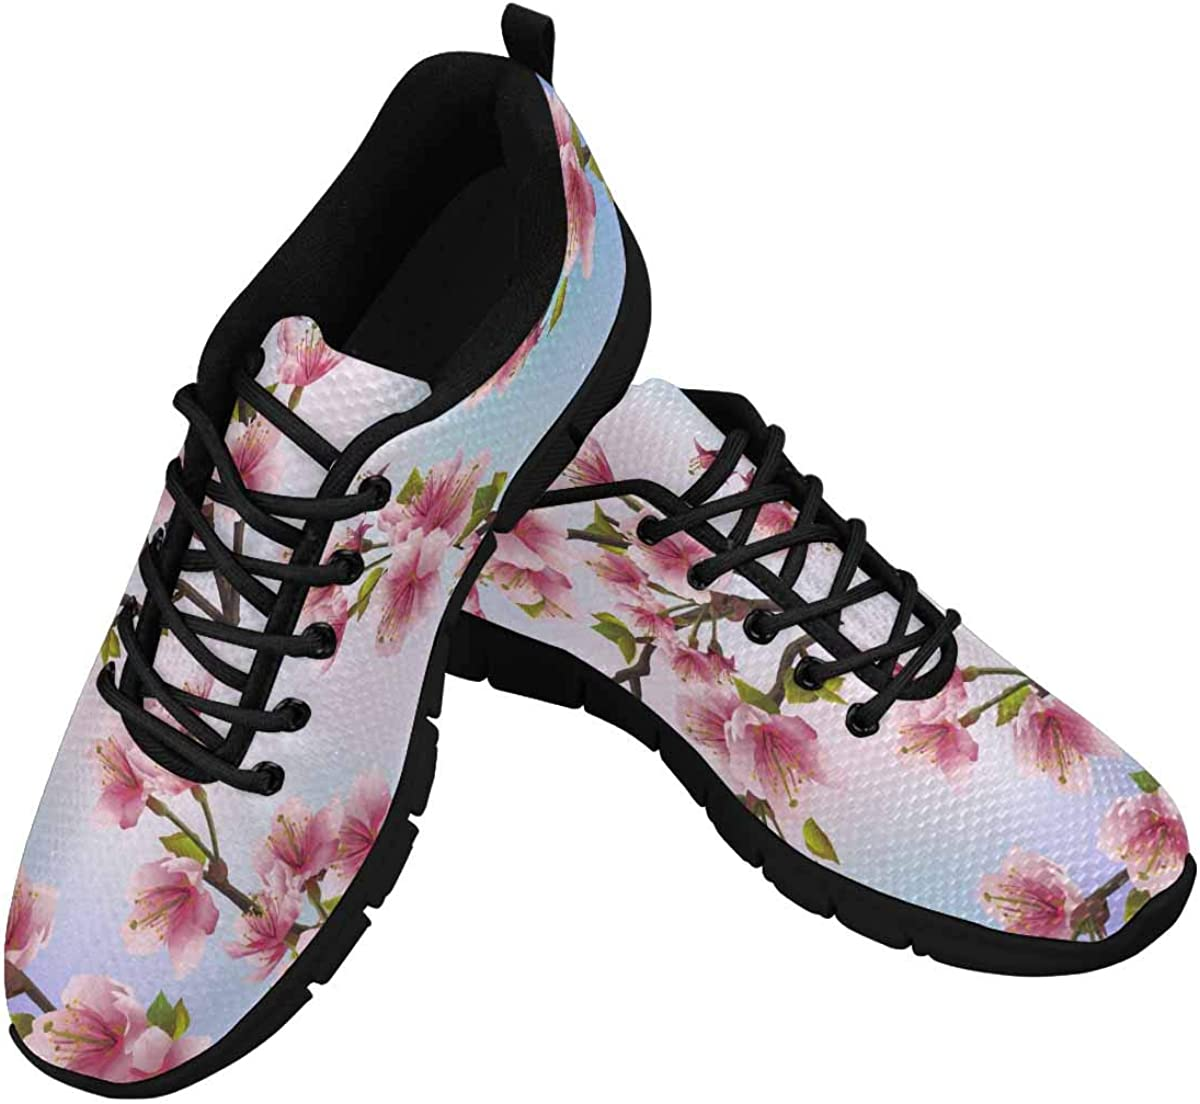 InterestPrint Cherry Blossoms Tree Women's Athletic Walking Shoes Casual Mesh Comfortable Work Sneakers